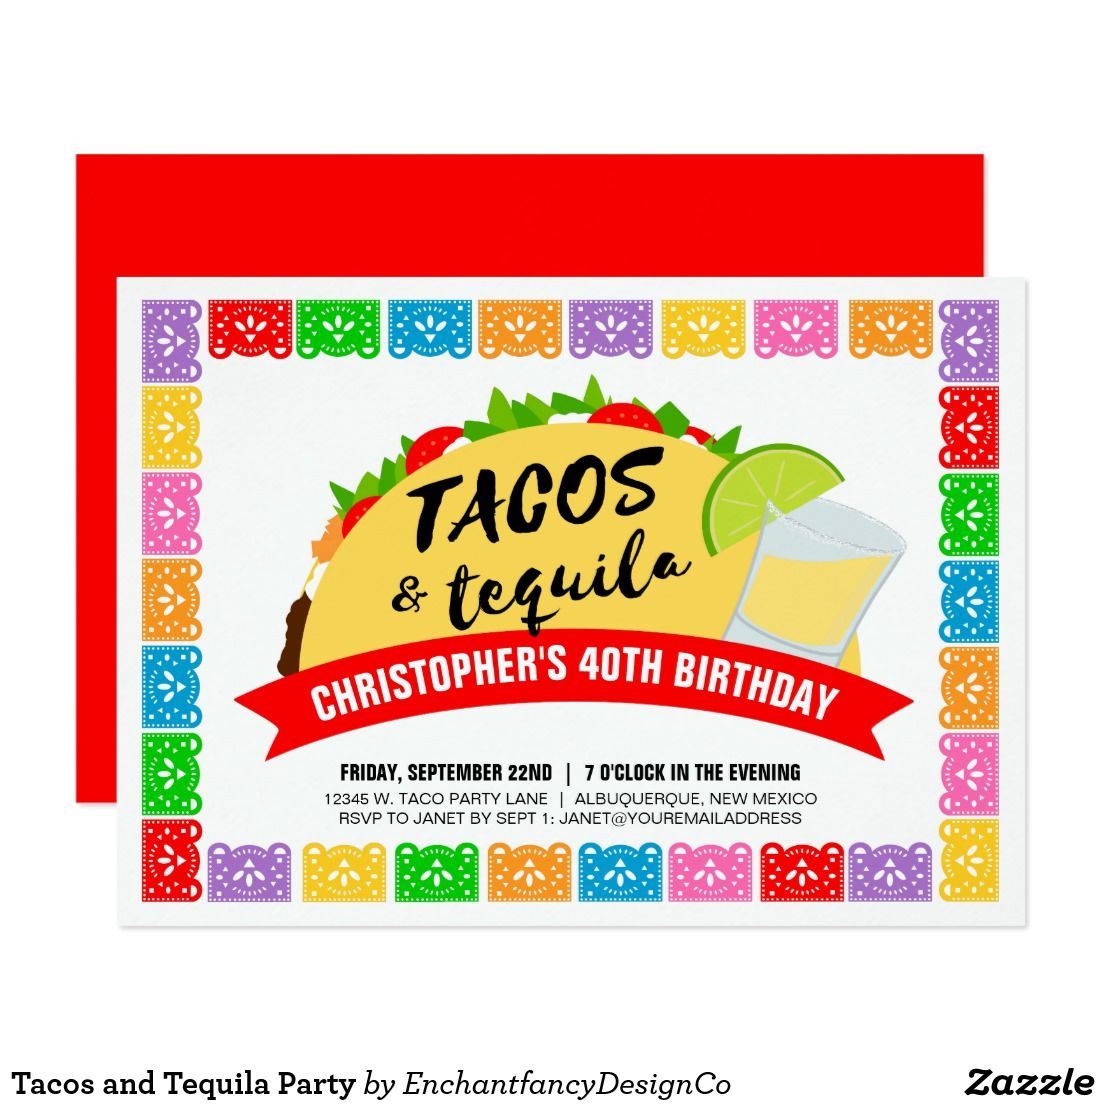 Tacos and Tequila Party Invitation | Taco Party Ideas | Pinterest ...